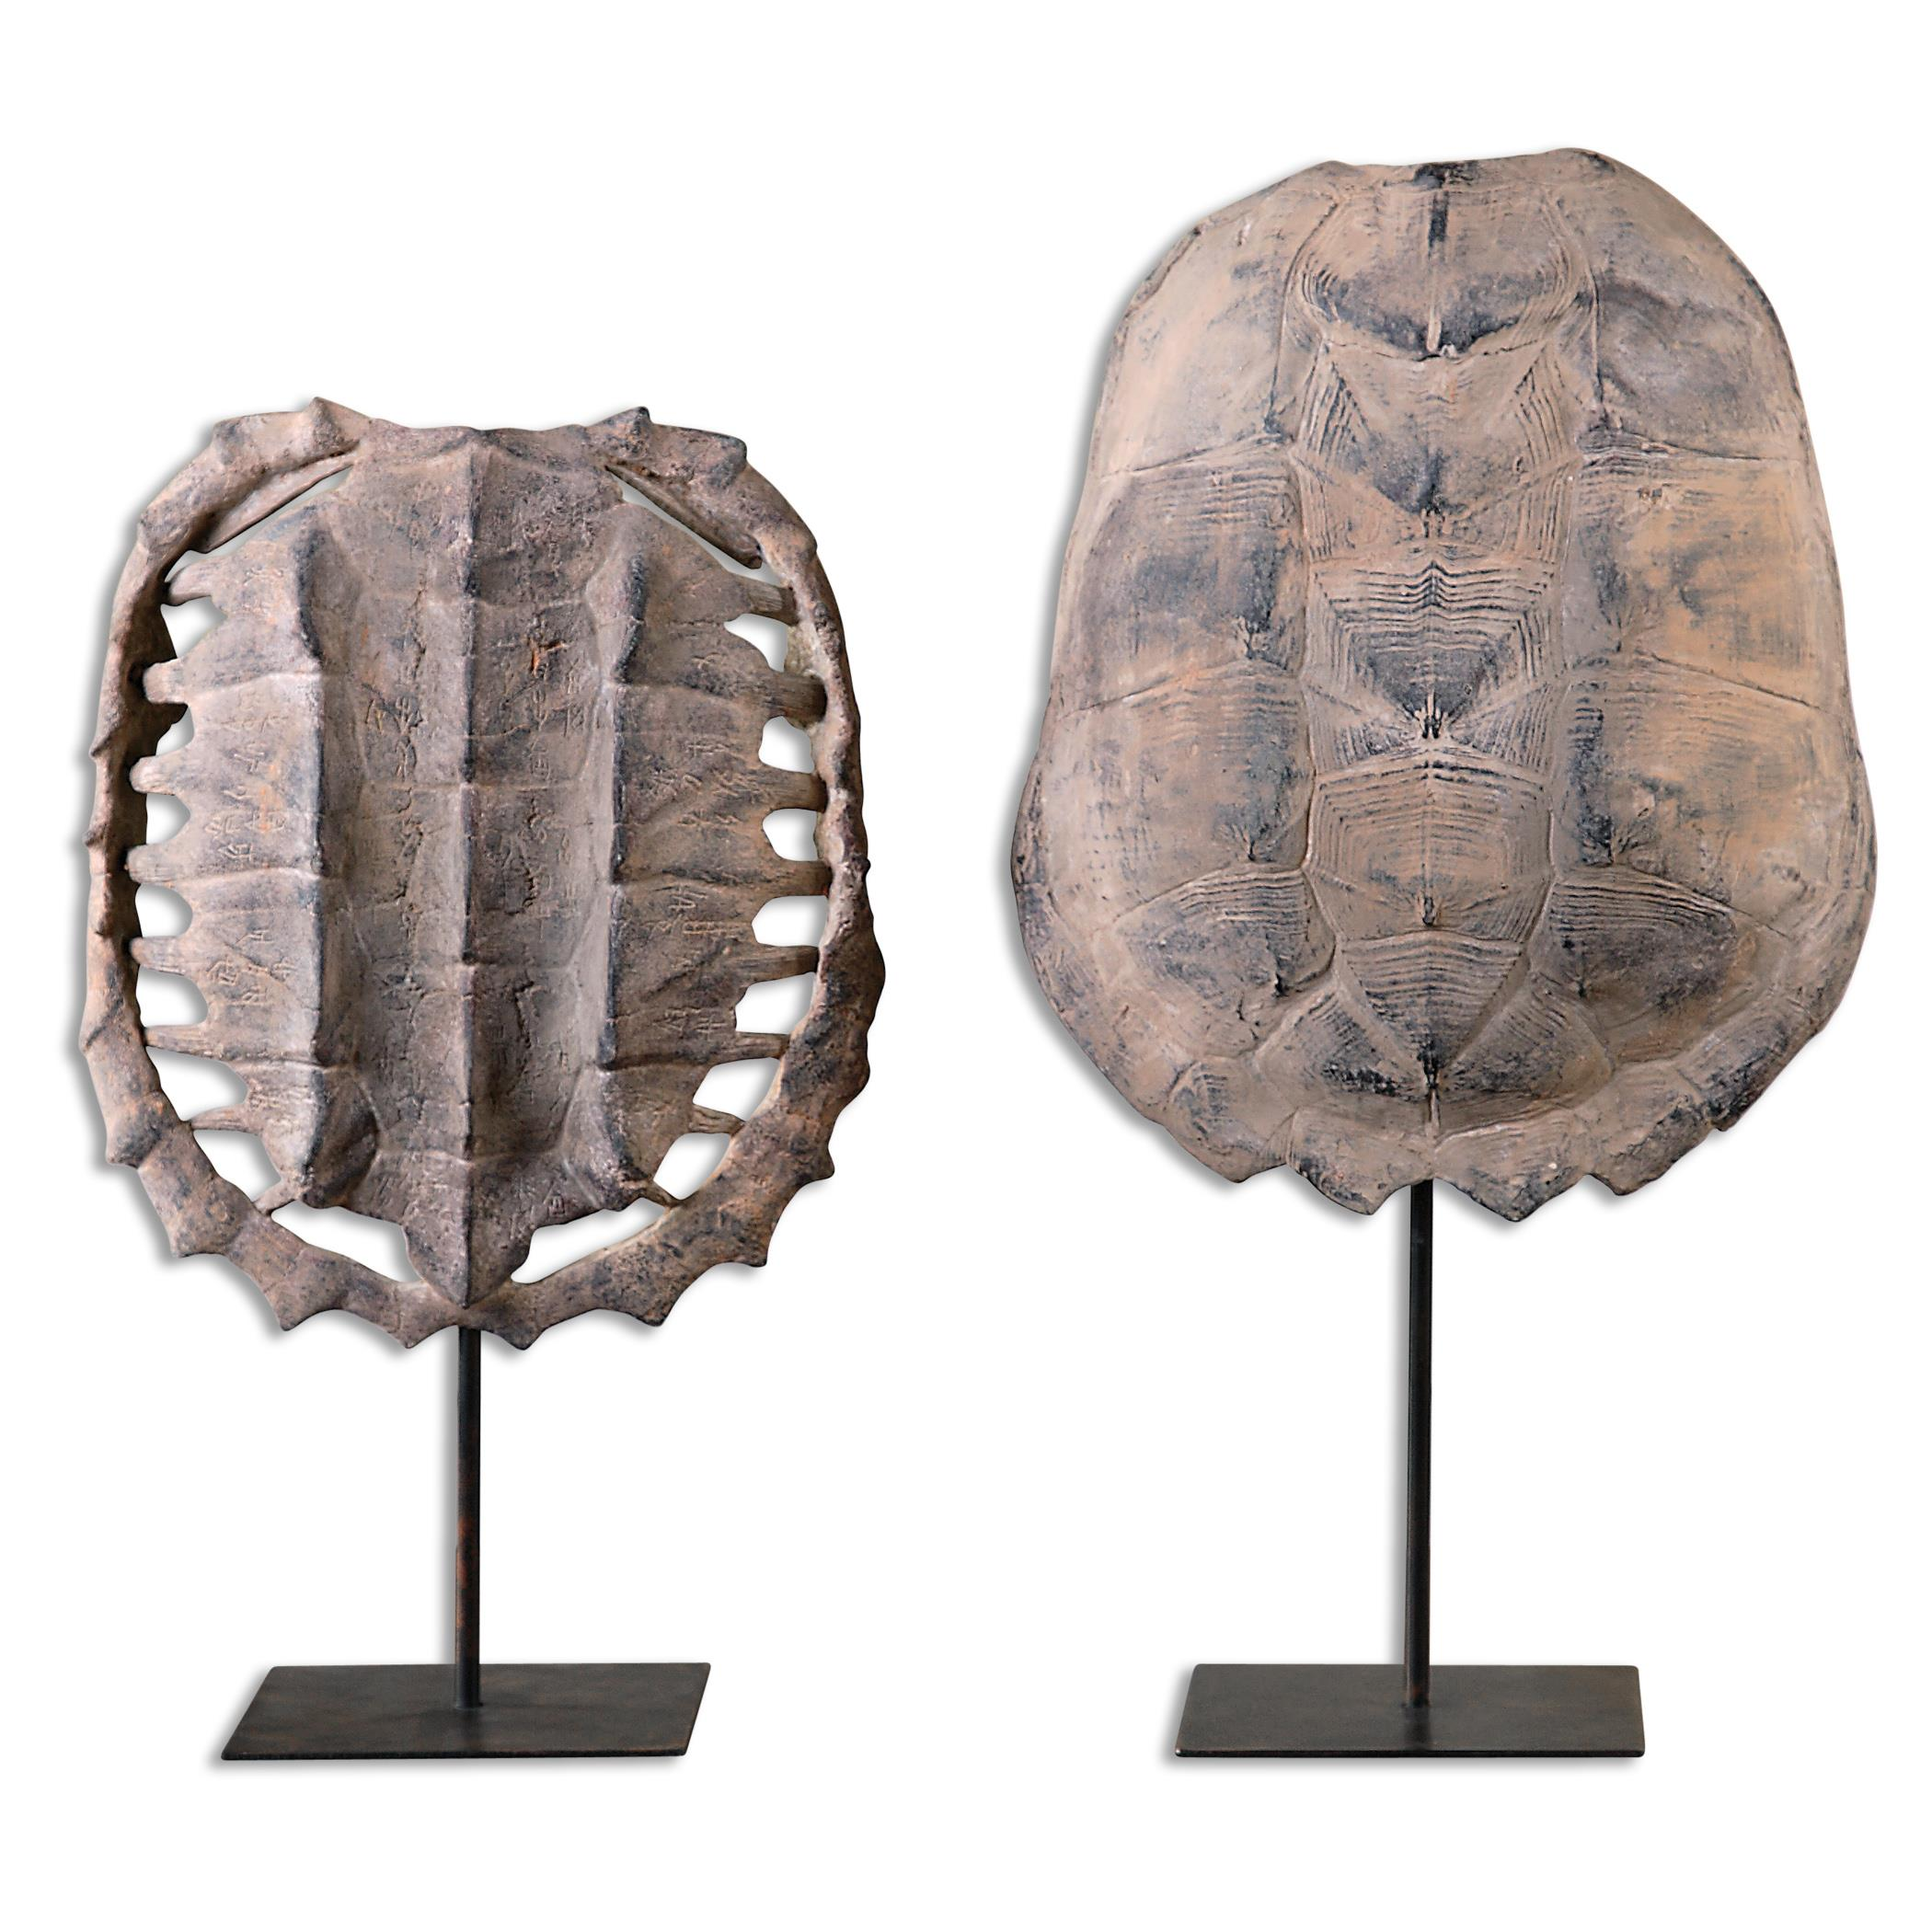 Uttermost Accessories Turtle Shells, S/2 - Item Number: 19925